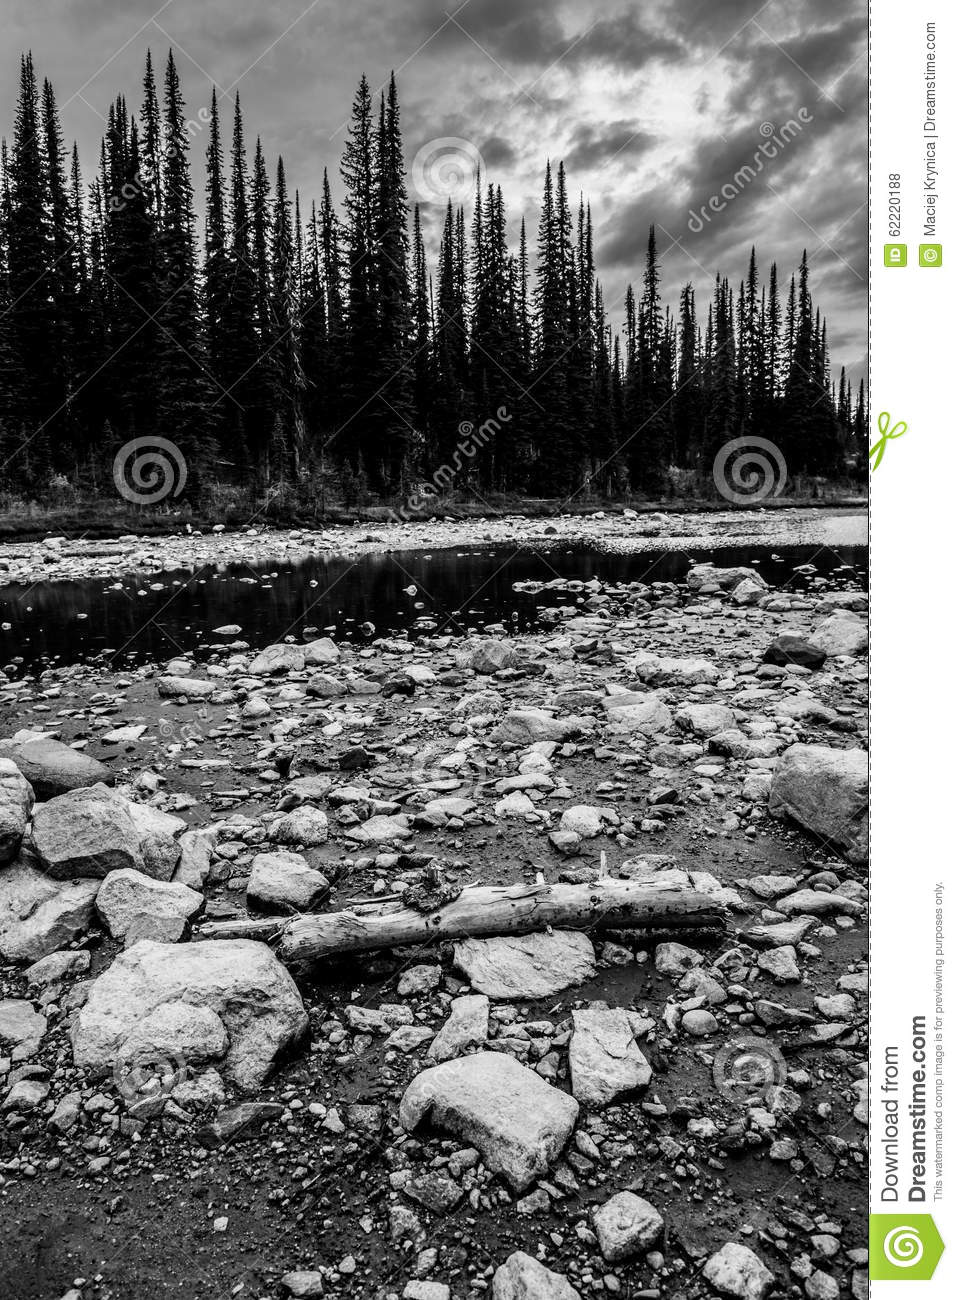 Rocks and forest in canada stock photo image 62220188 for Landscaping rocks canada